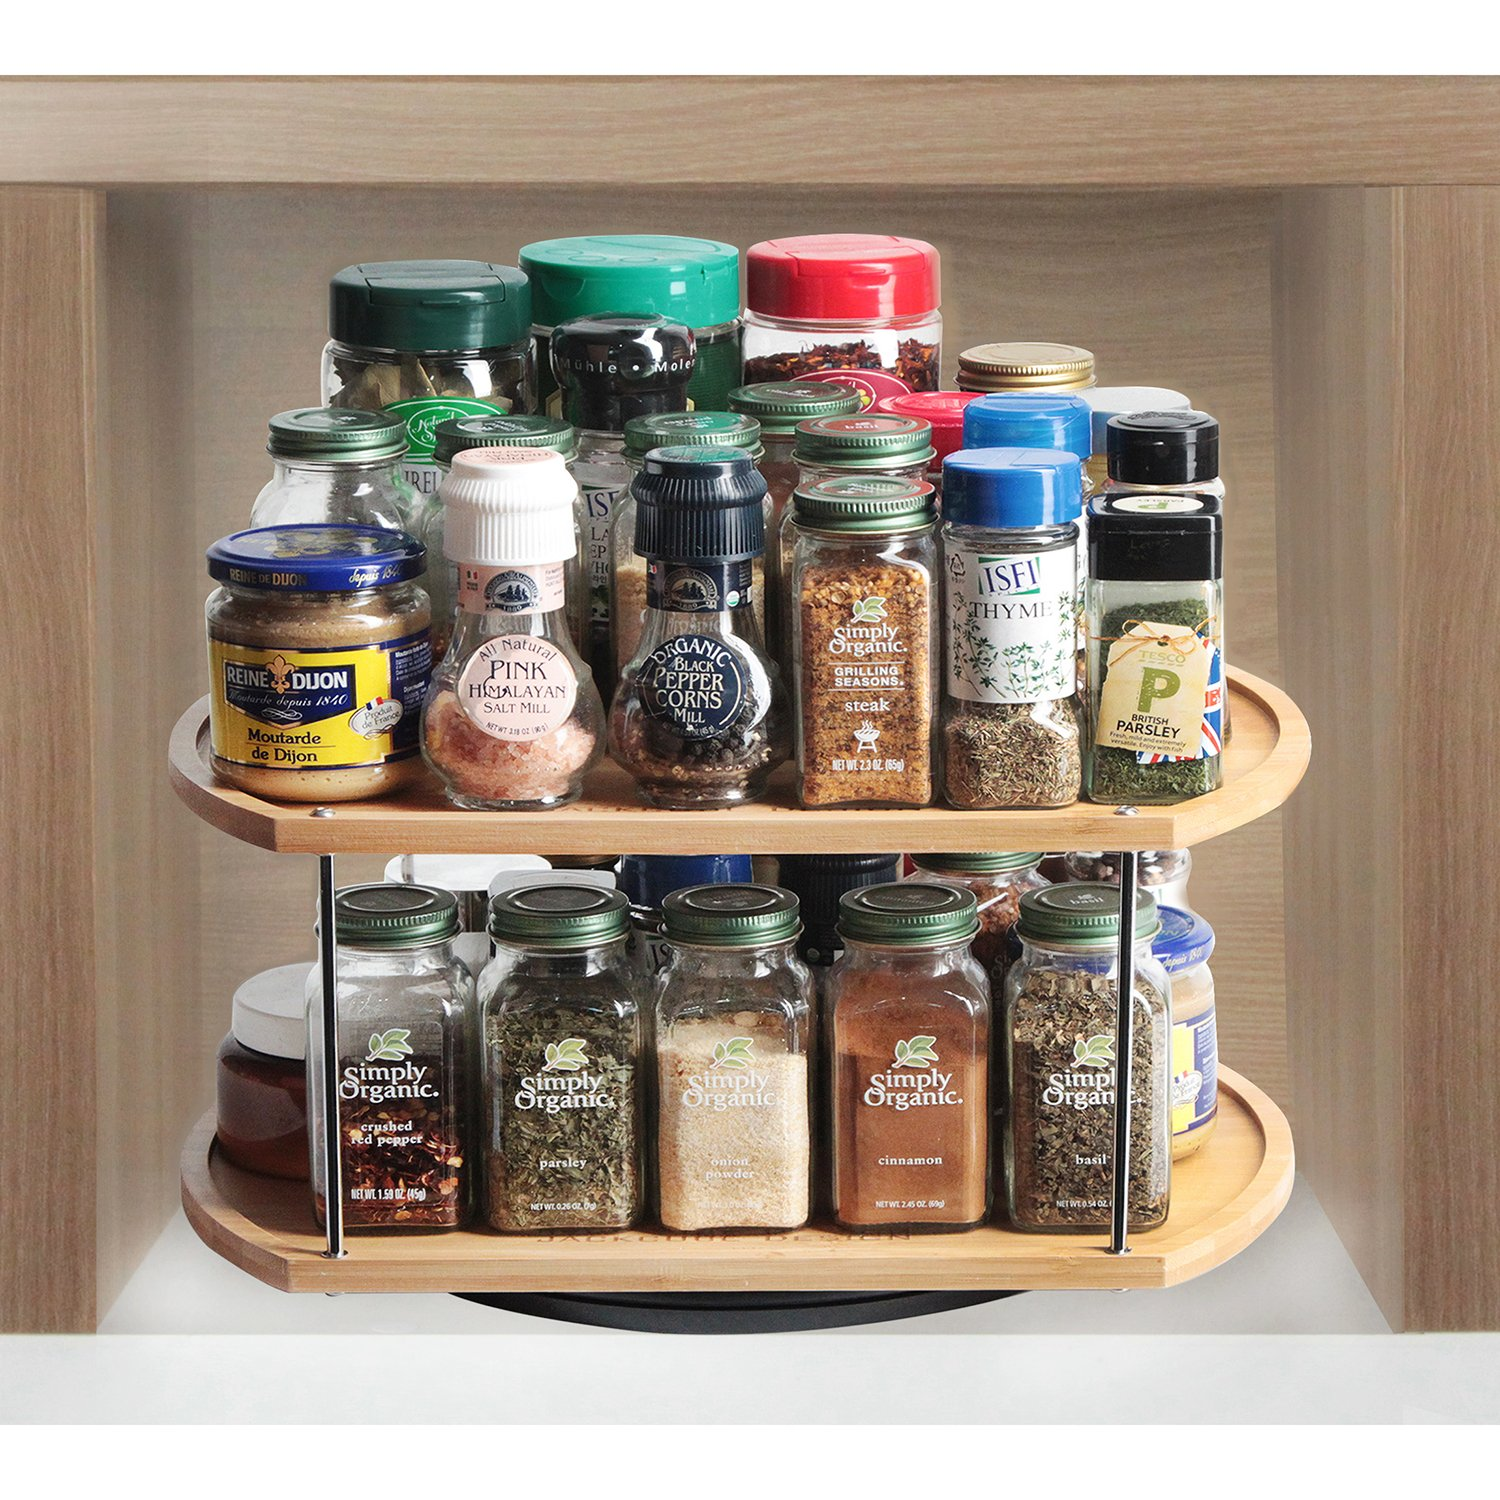 MK383A 35,6 x 29,8 x 18,2 cm JackCubeDesign 360 Rotante Lazy Susan Bamboo Spice Jar Rack Cucina Countertop Display Organizer Spice Bottle Piano di lavoro Holder Stand Mensola con Stunning 2 Tier -